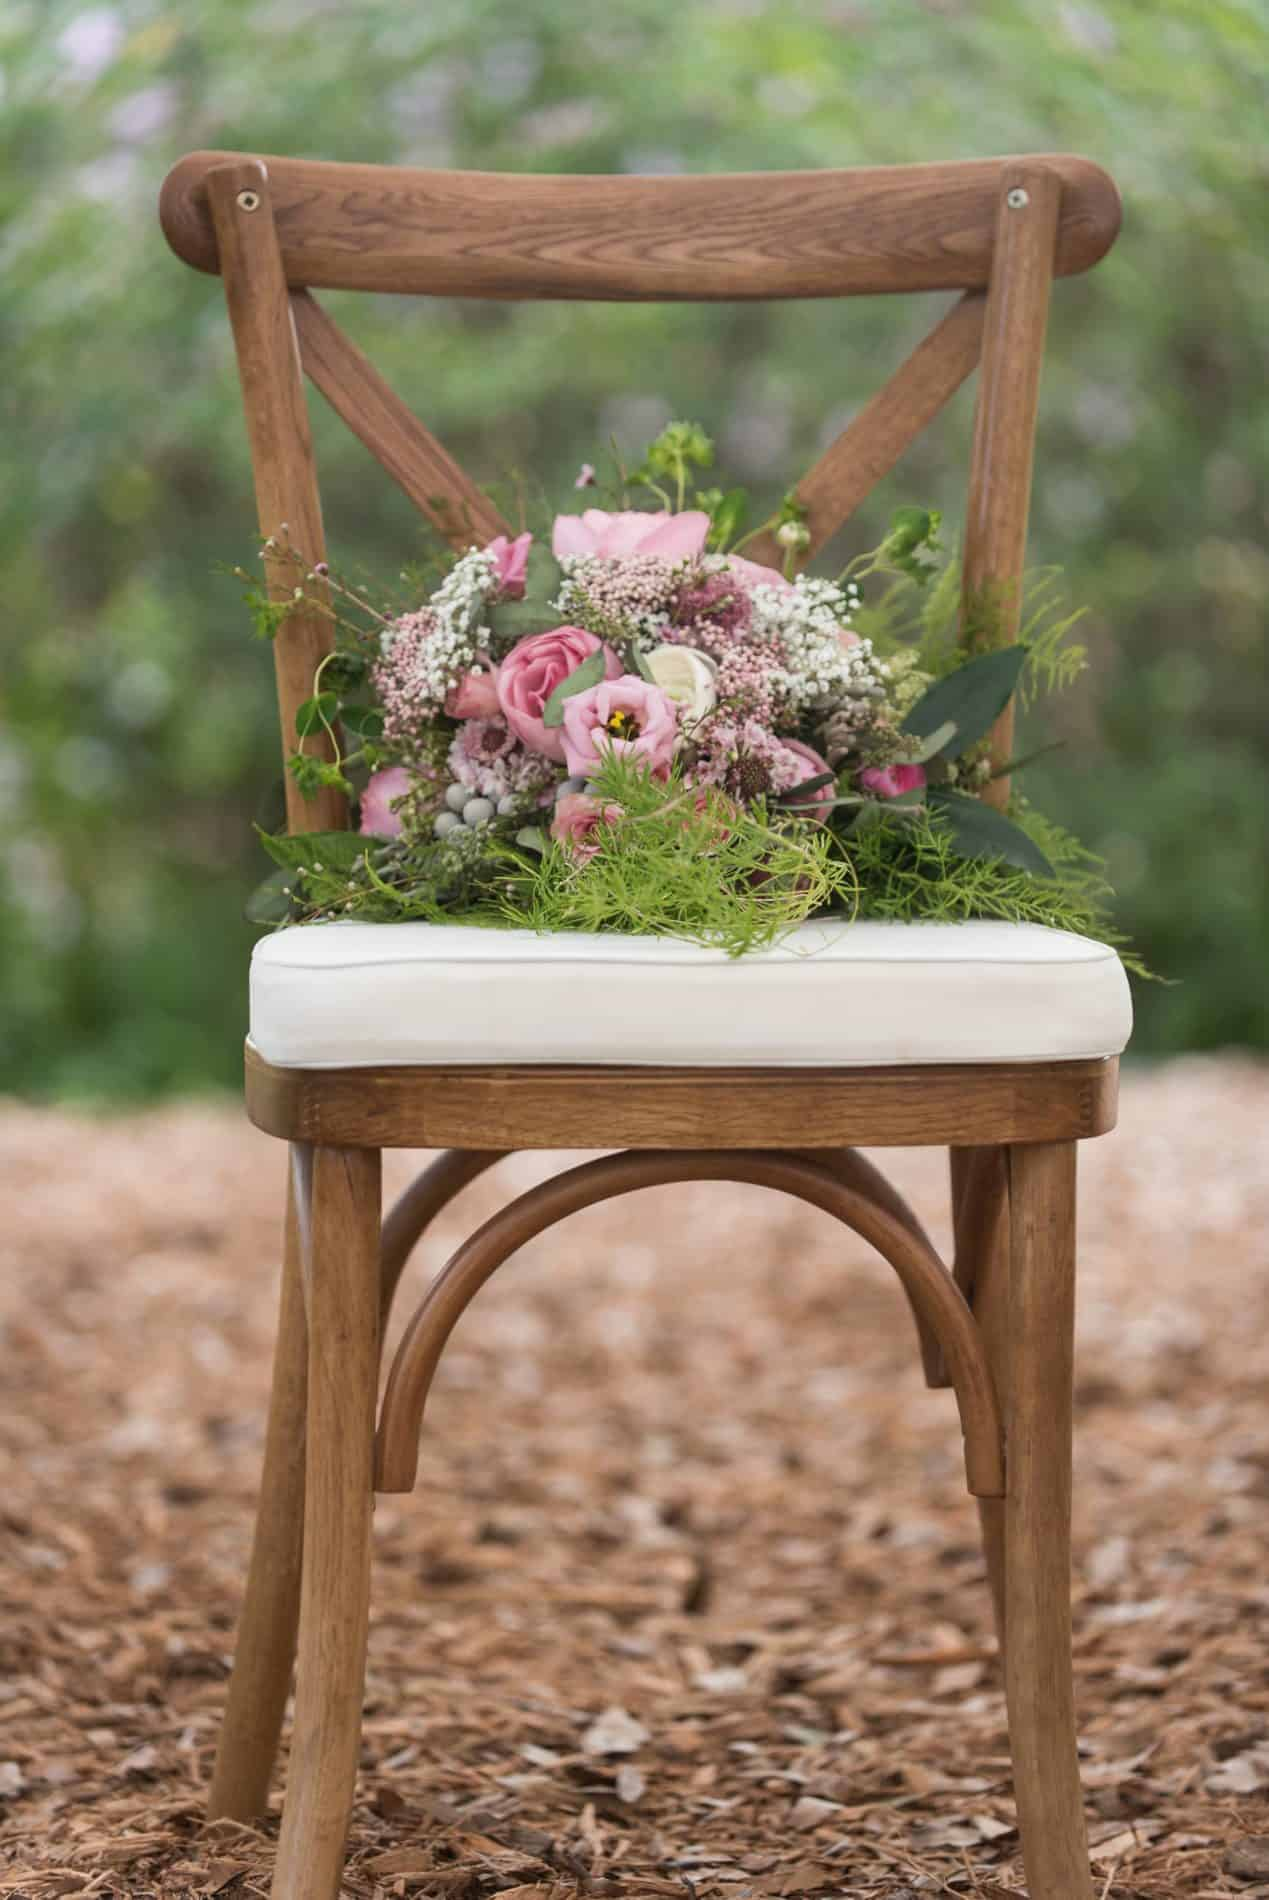 Outdoor Harmony Gardens Inspirational Shoot with Lavender Bouquet